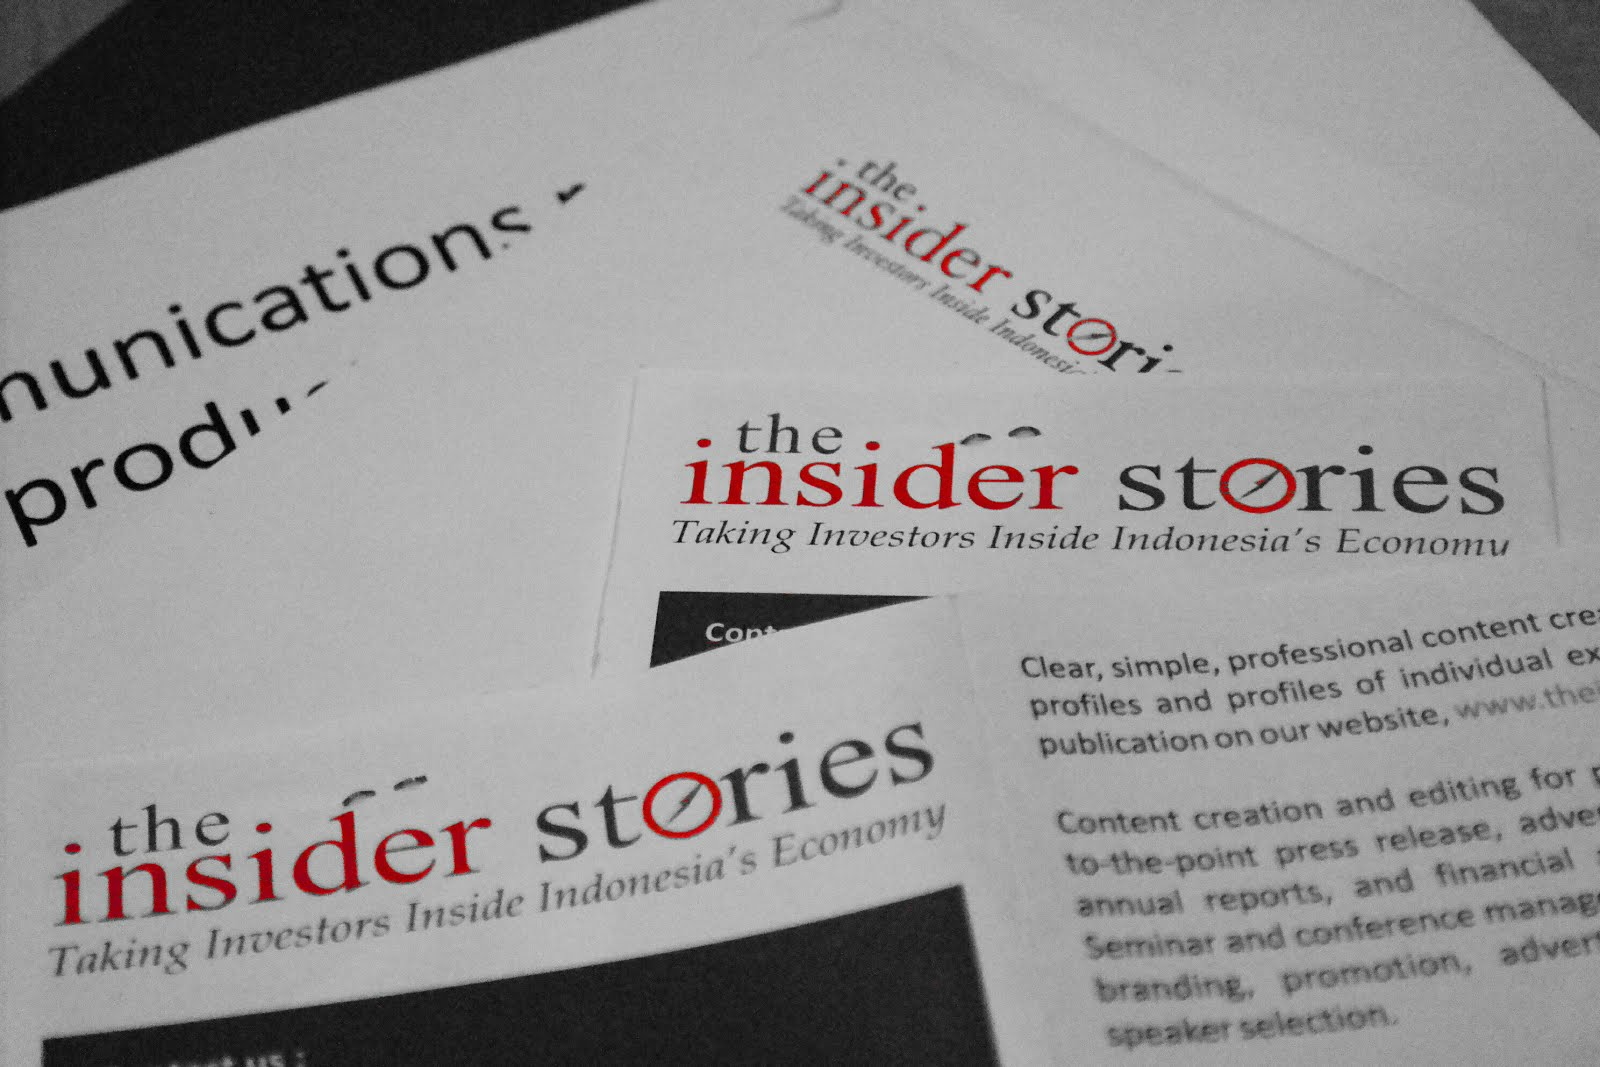 The Insider Stories